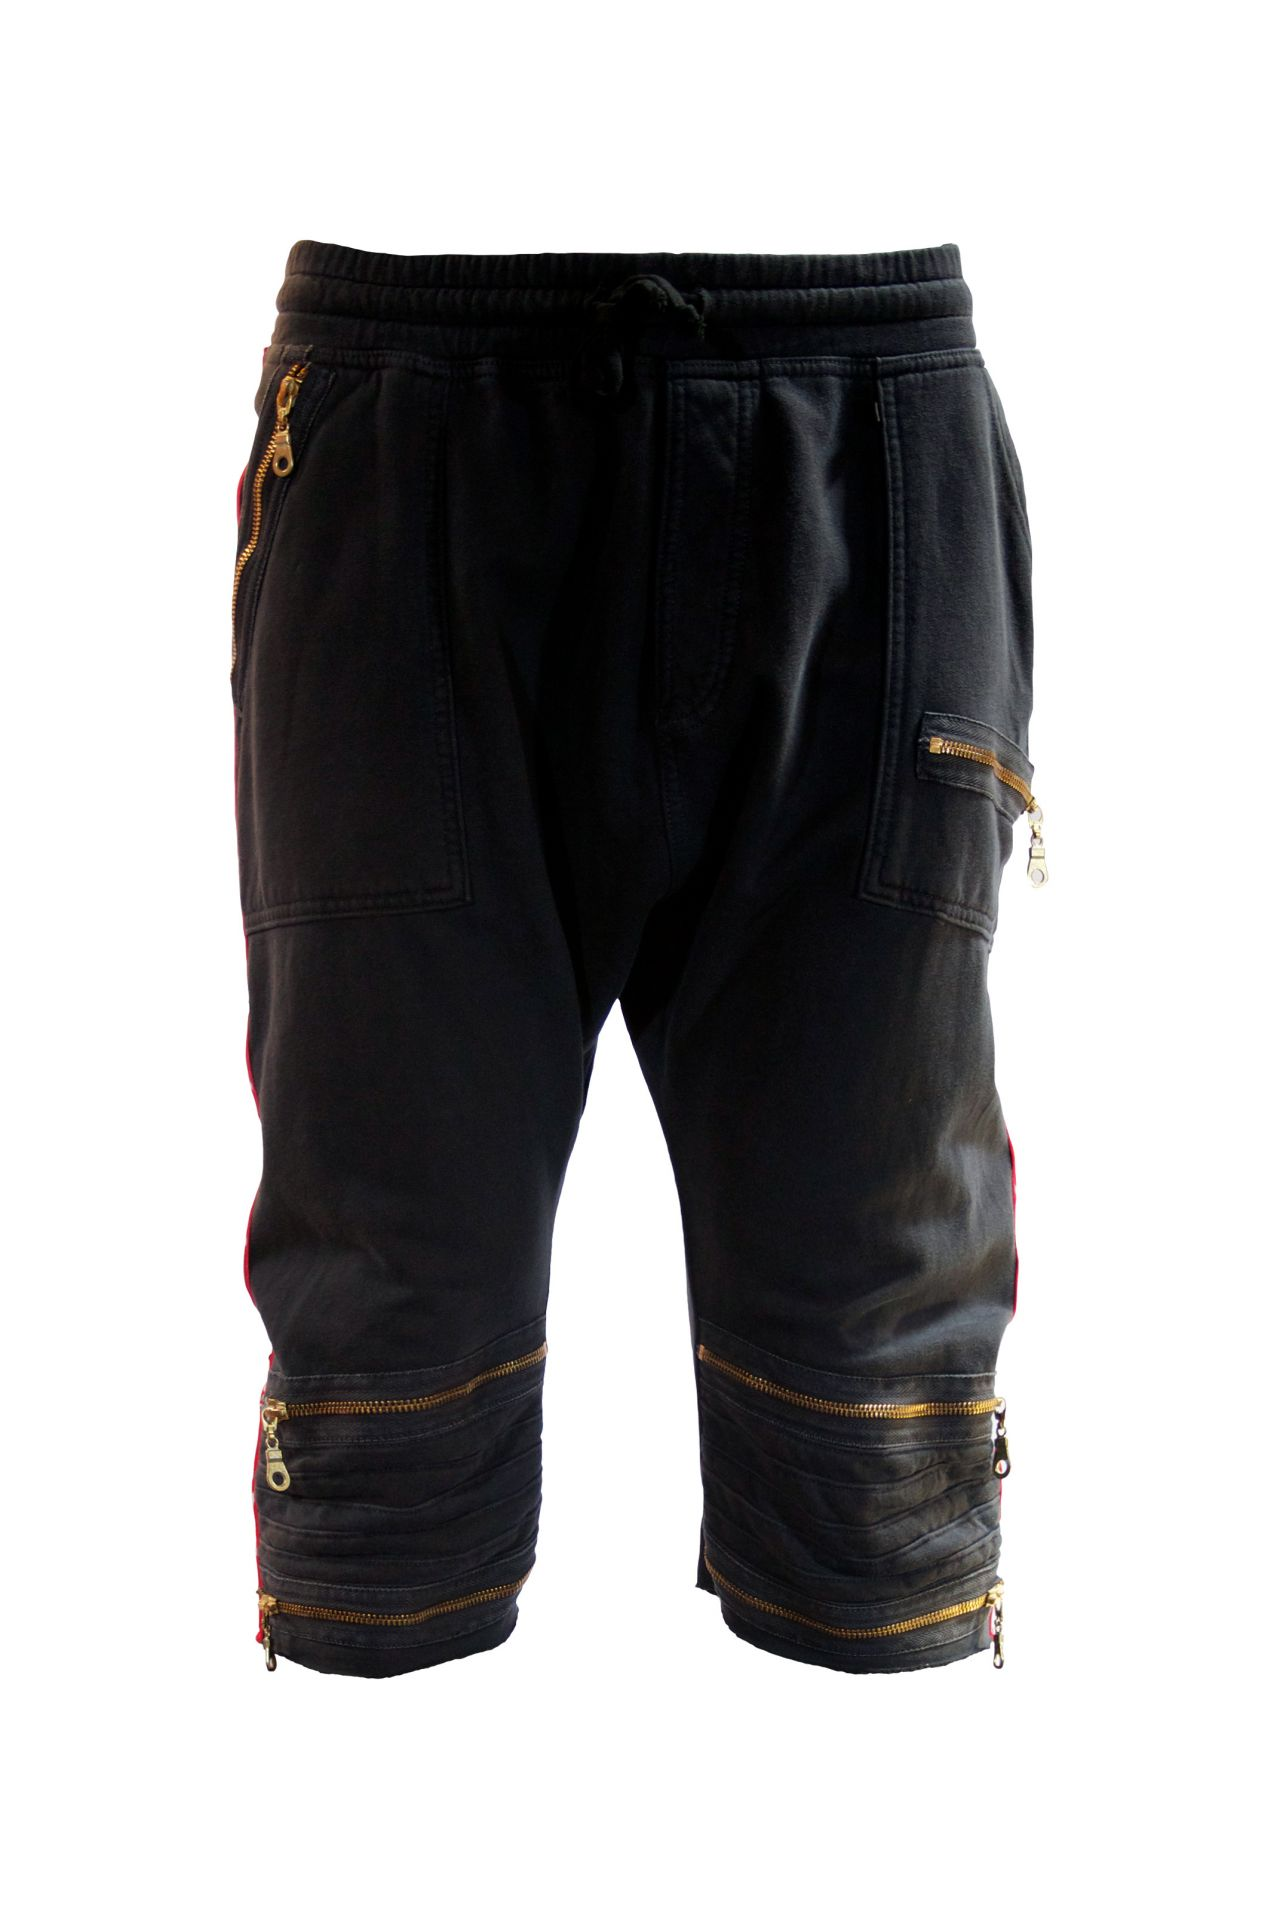 WHITE ON RED STAR SHORTS WITH SW IN BLACK